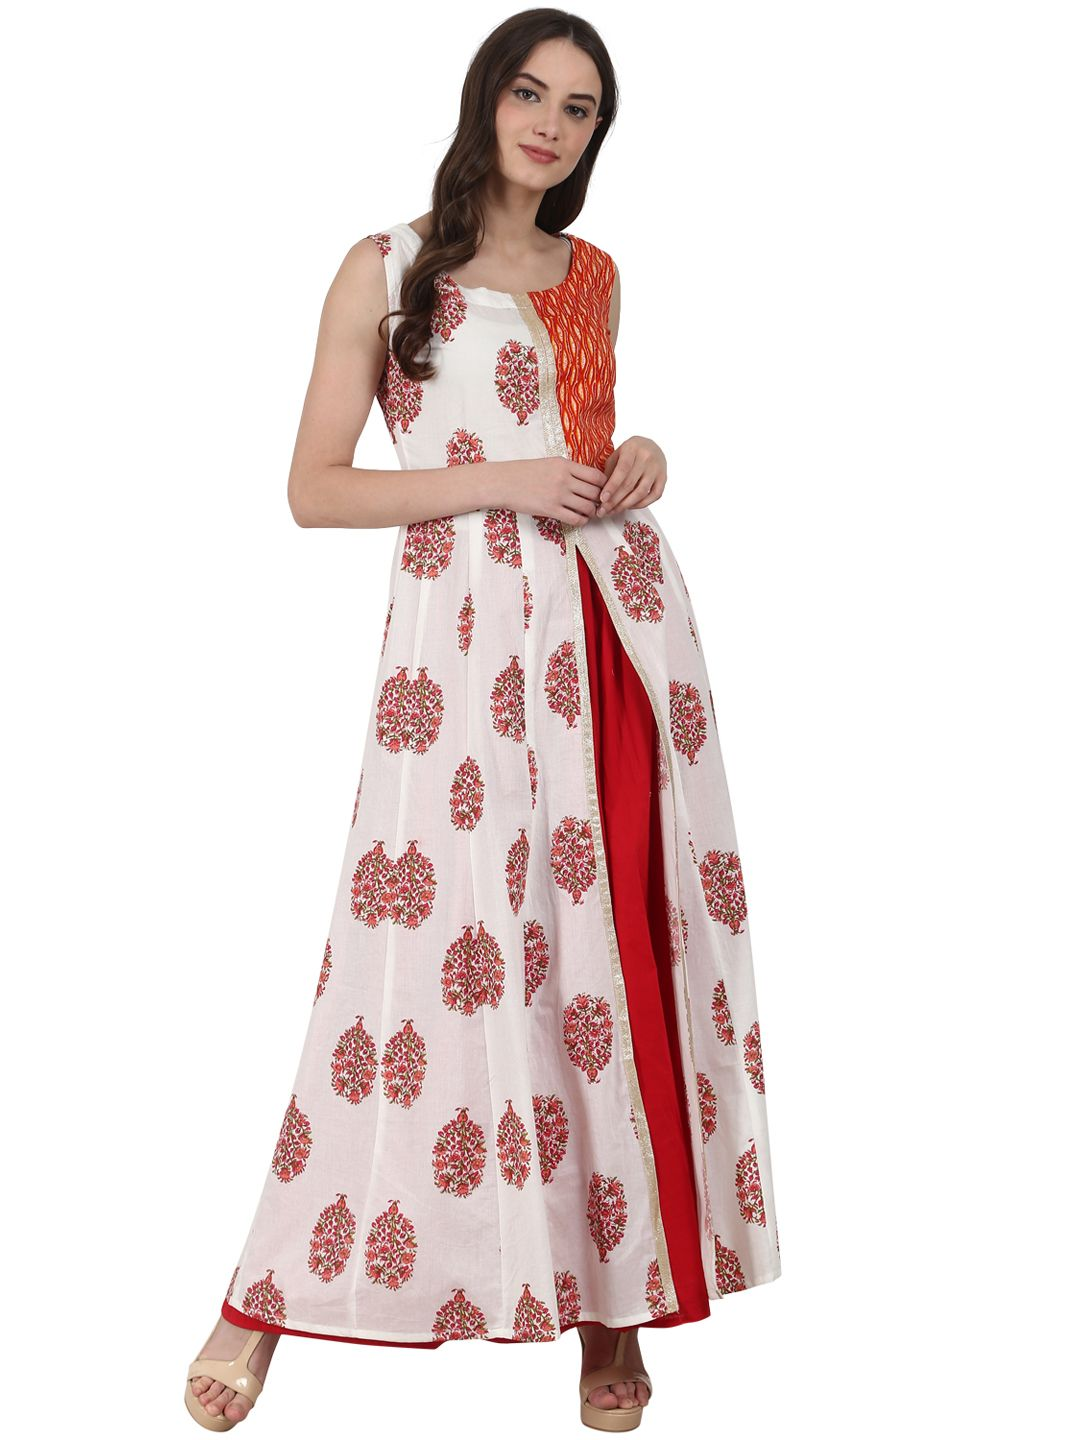 5eb875da6 Nayo Printed Layered Anarkali Kurta with High Slit  Anarkali  Layeredkurti   Cotton  Summer  Red  Kurta  Kurtis  Casual  Printed